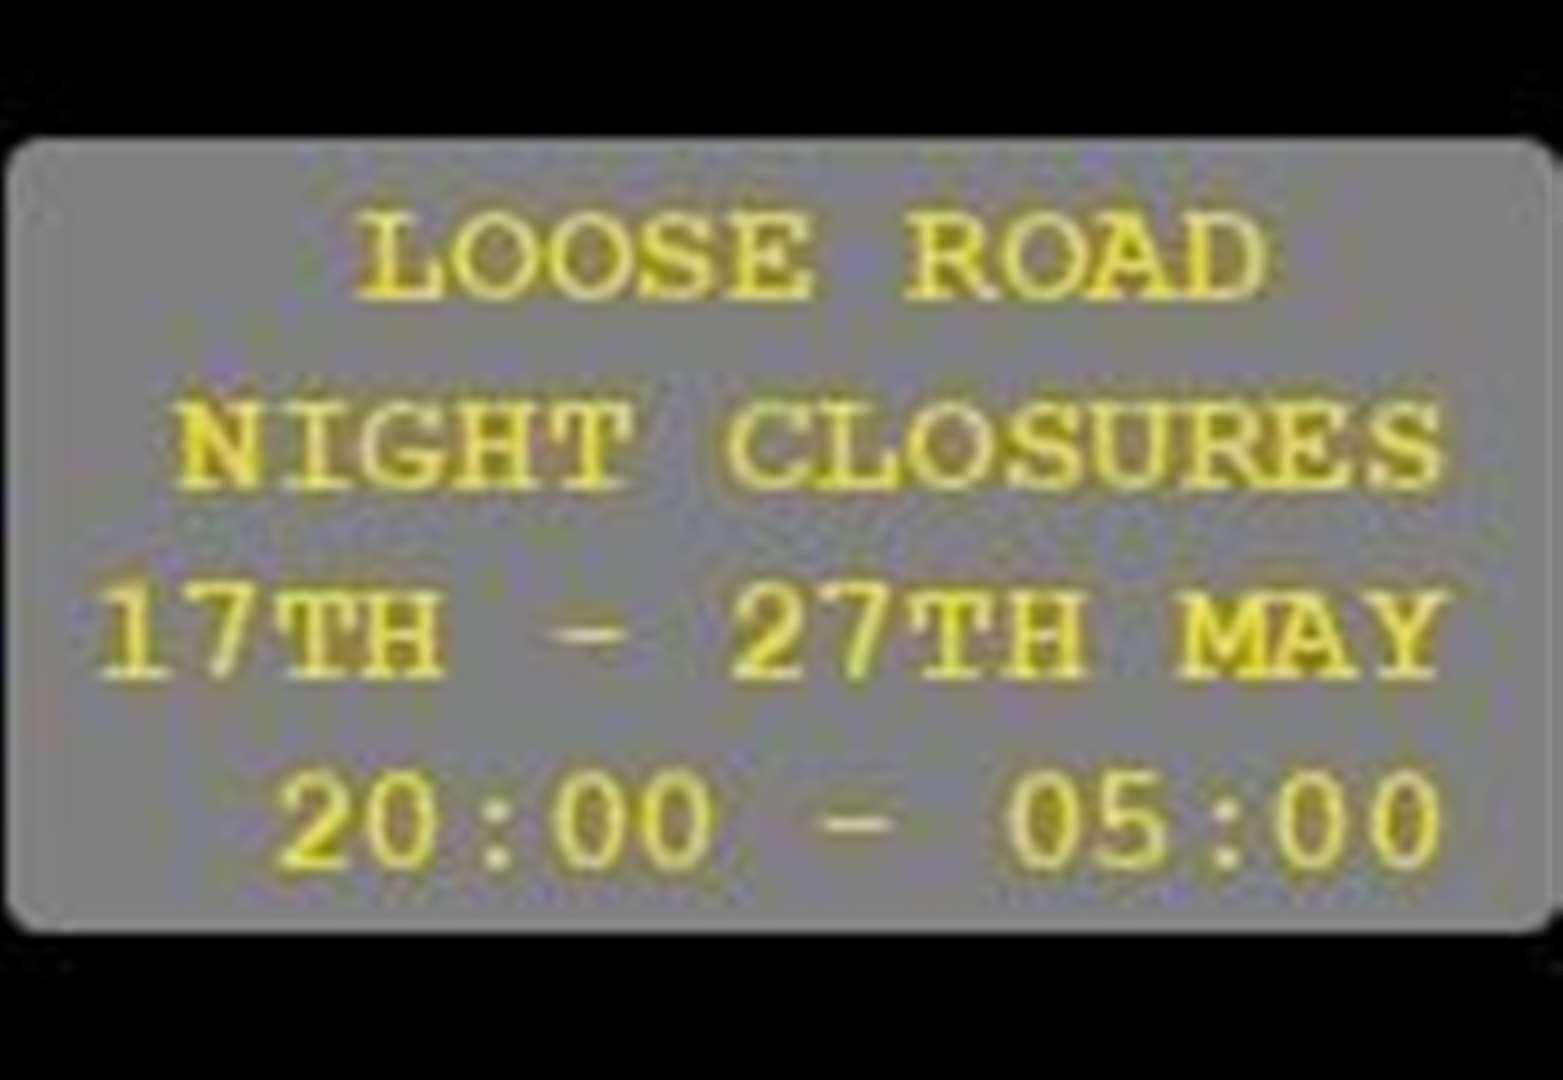 Loose Road shut overnight